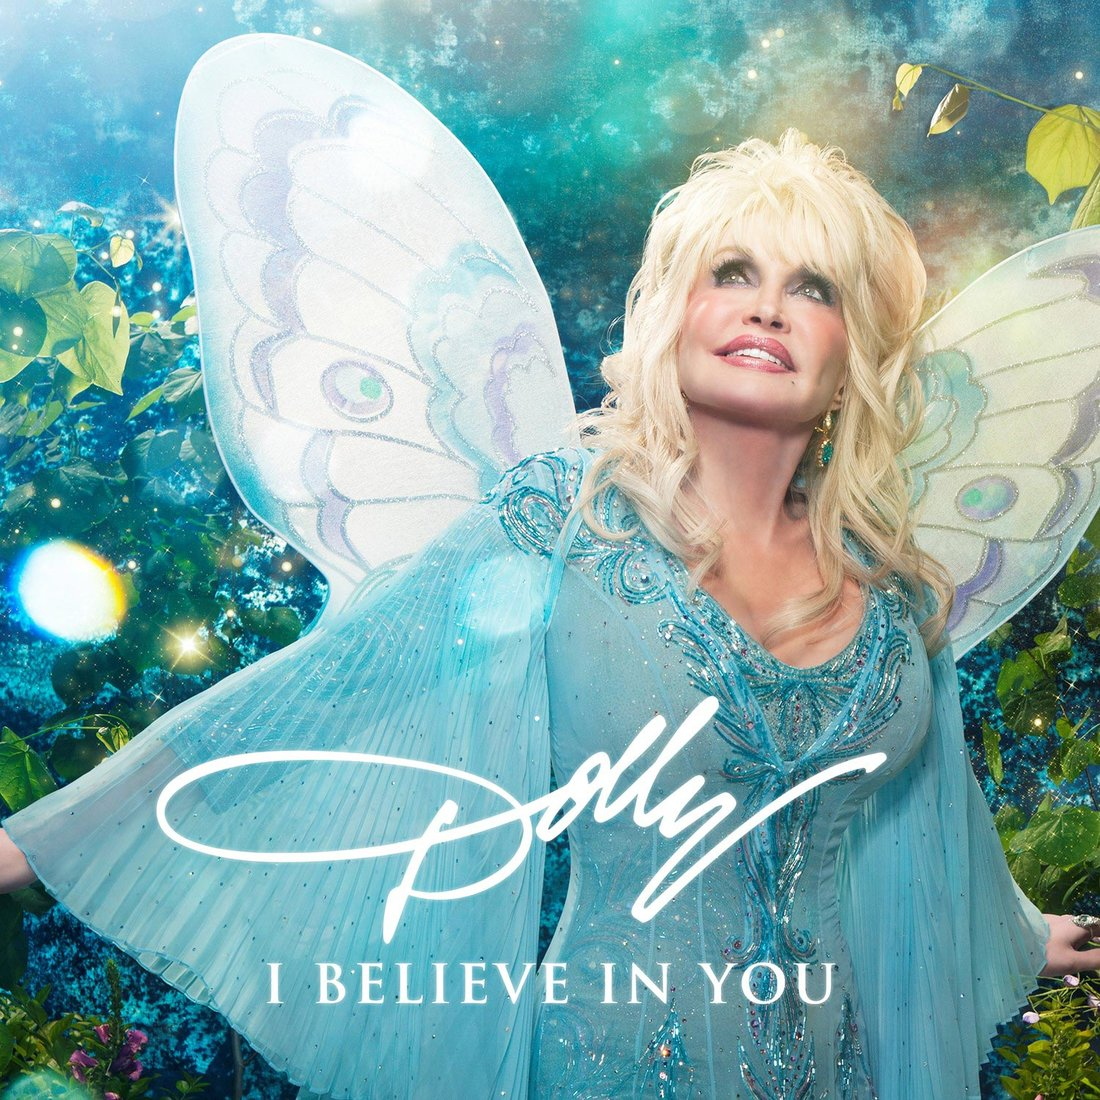 I-believe-in-you-dolly-parton-little-rockers-radio